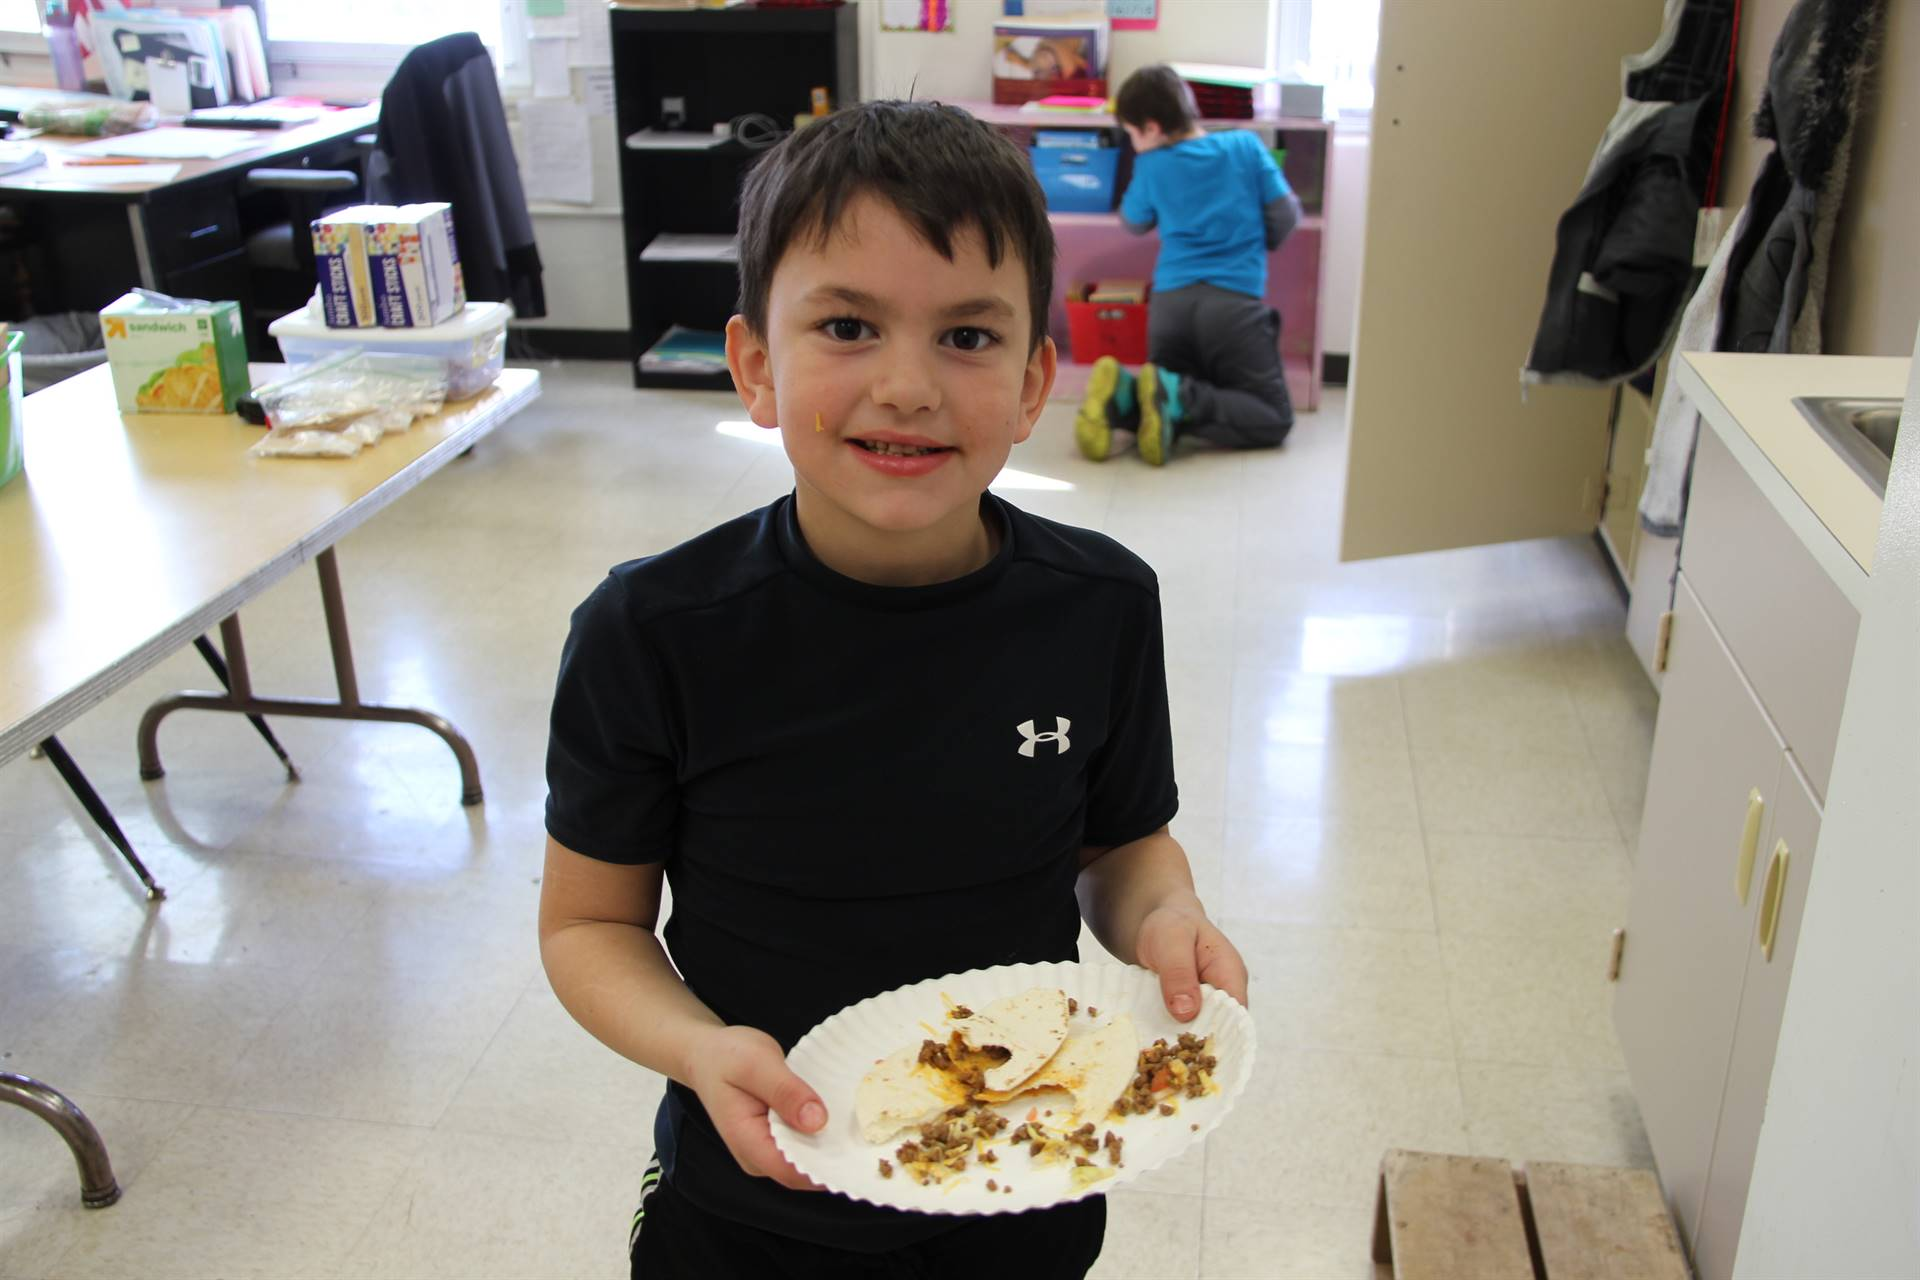 boy holding plate with finished taco